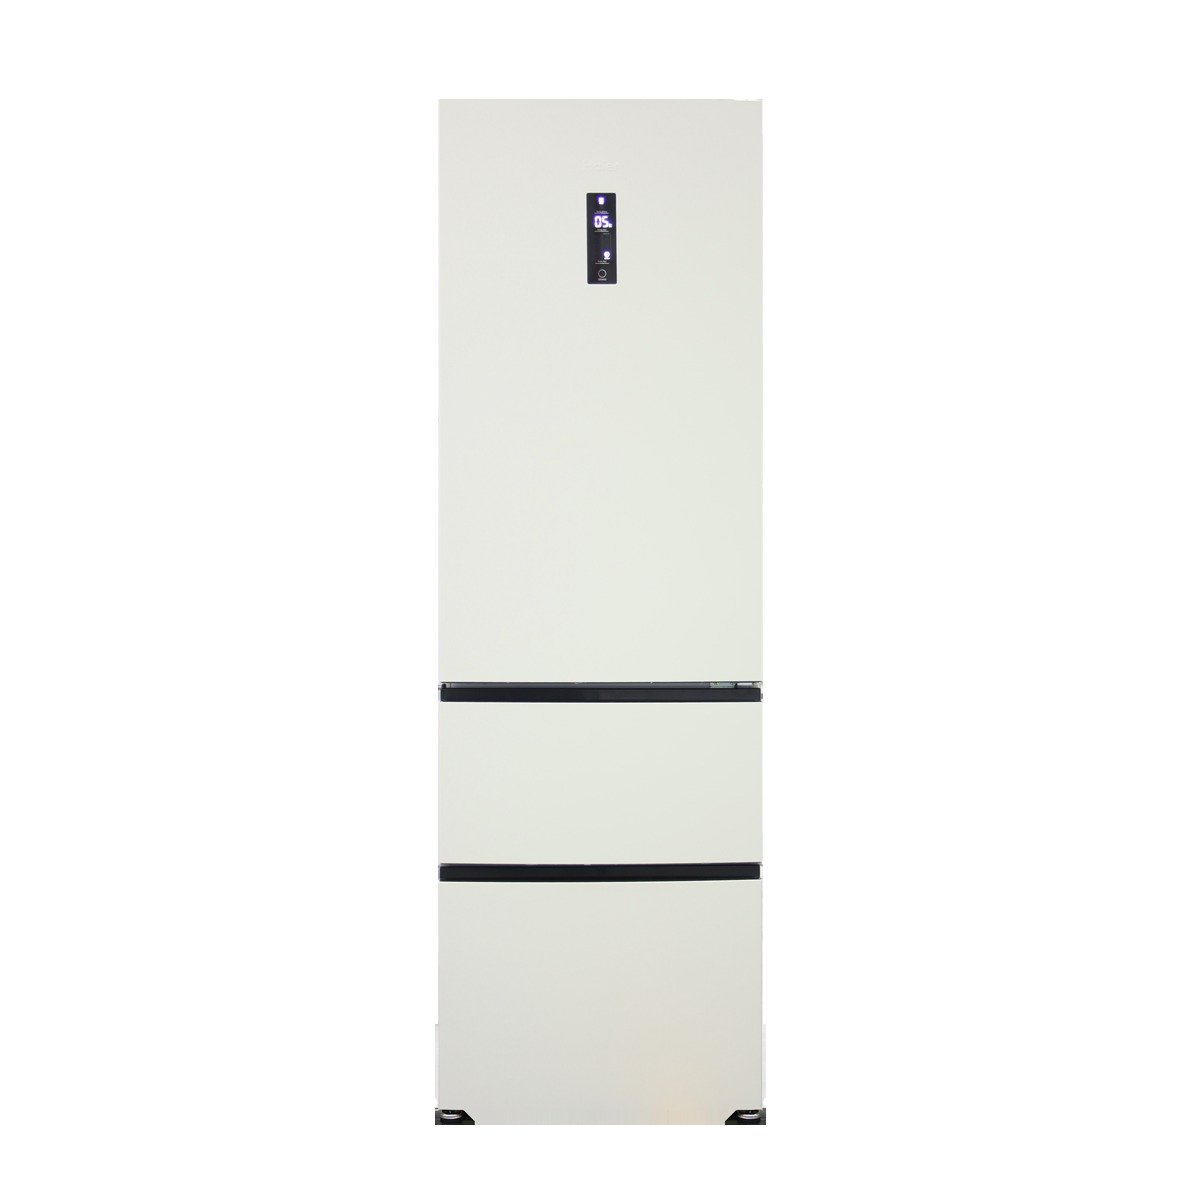 Image of Haier A2FE635CCJ American Fridge Freezer - Cream